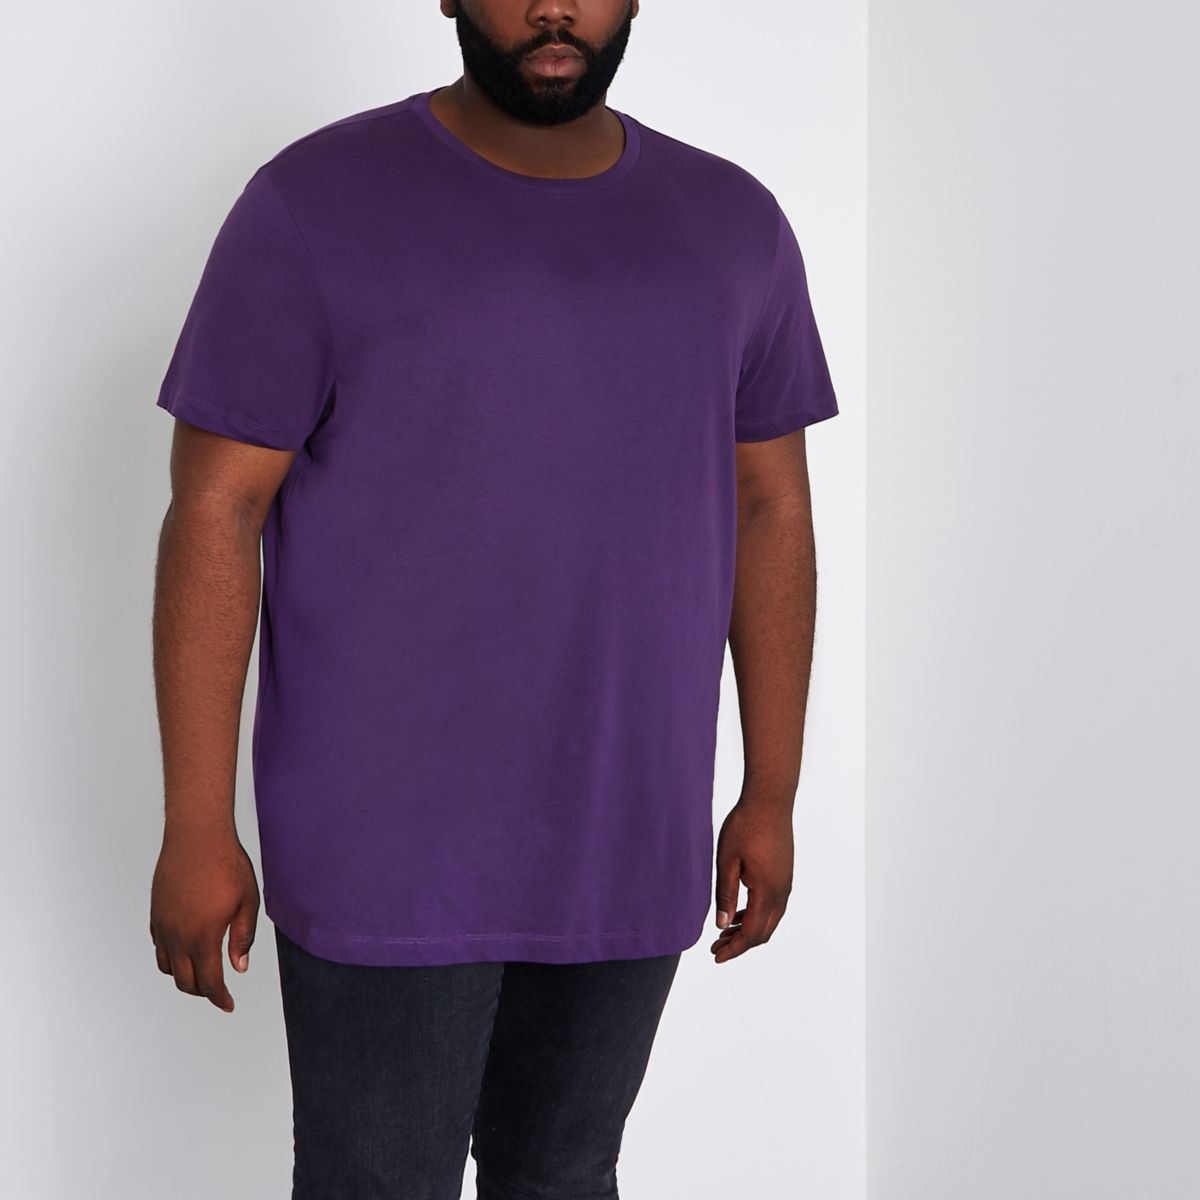 Big and Tall purple curved hem T-shirt